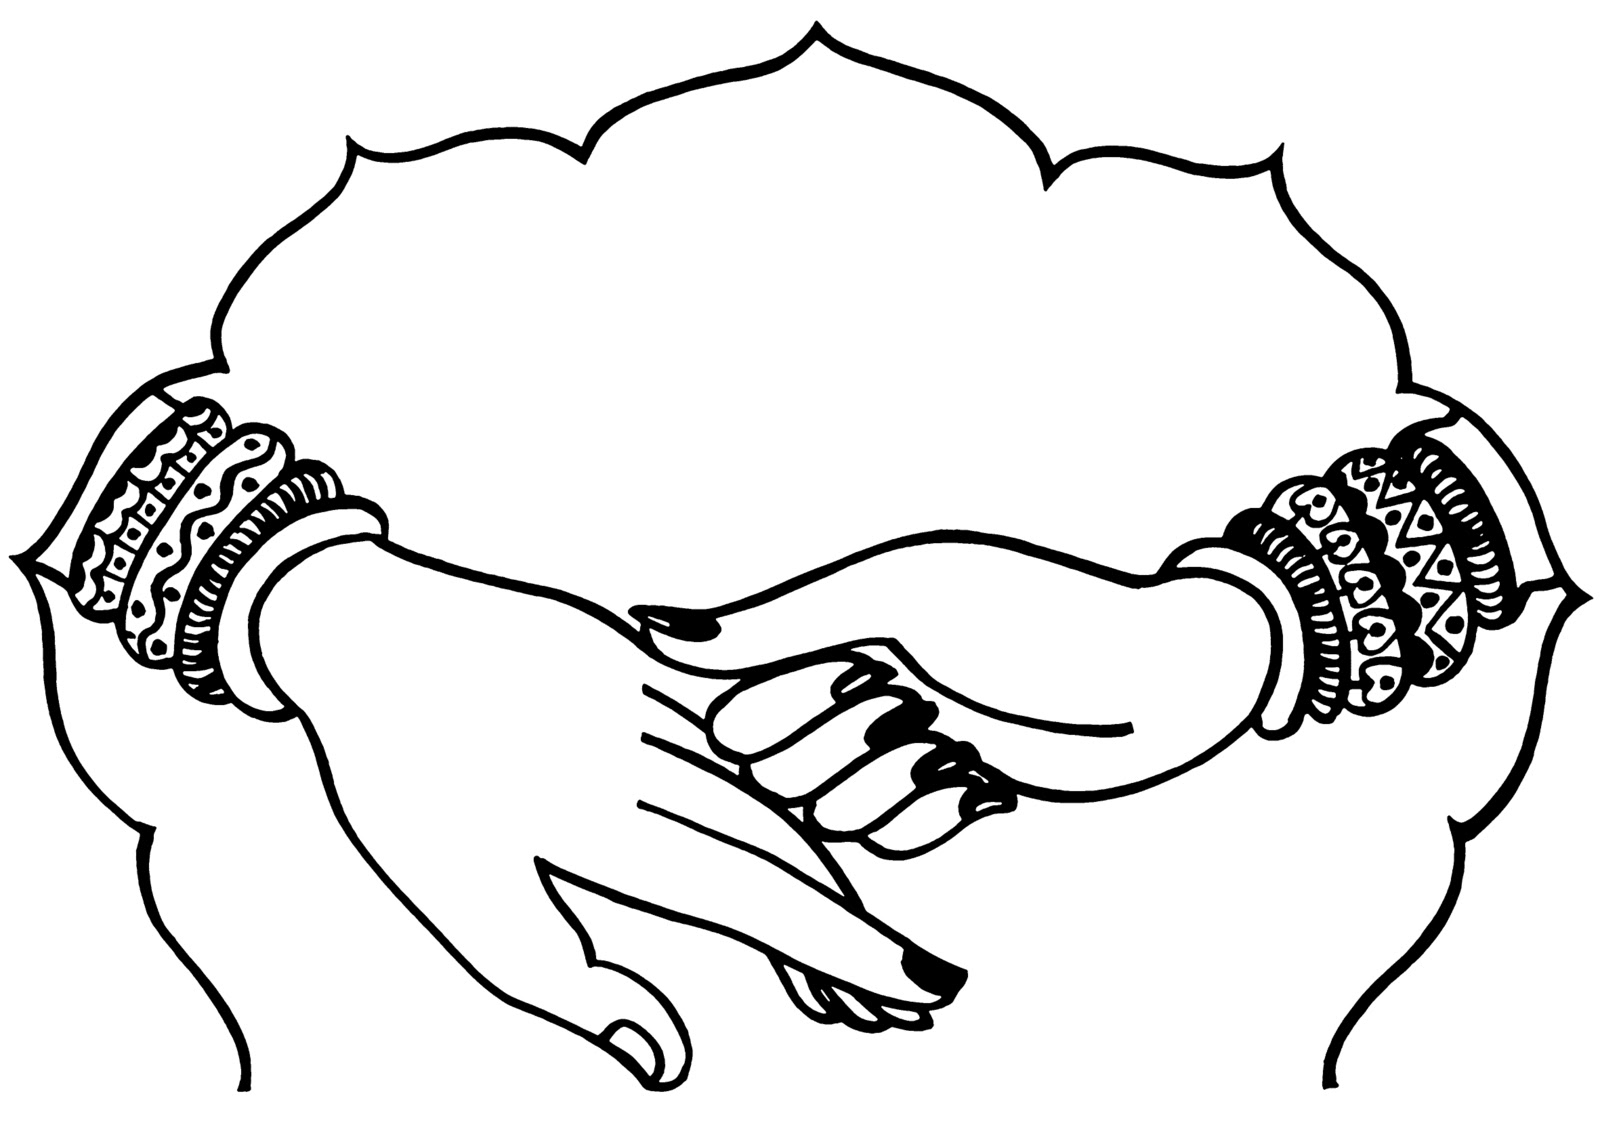 Indian wedding hands clipart 4 » Clipart Station.